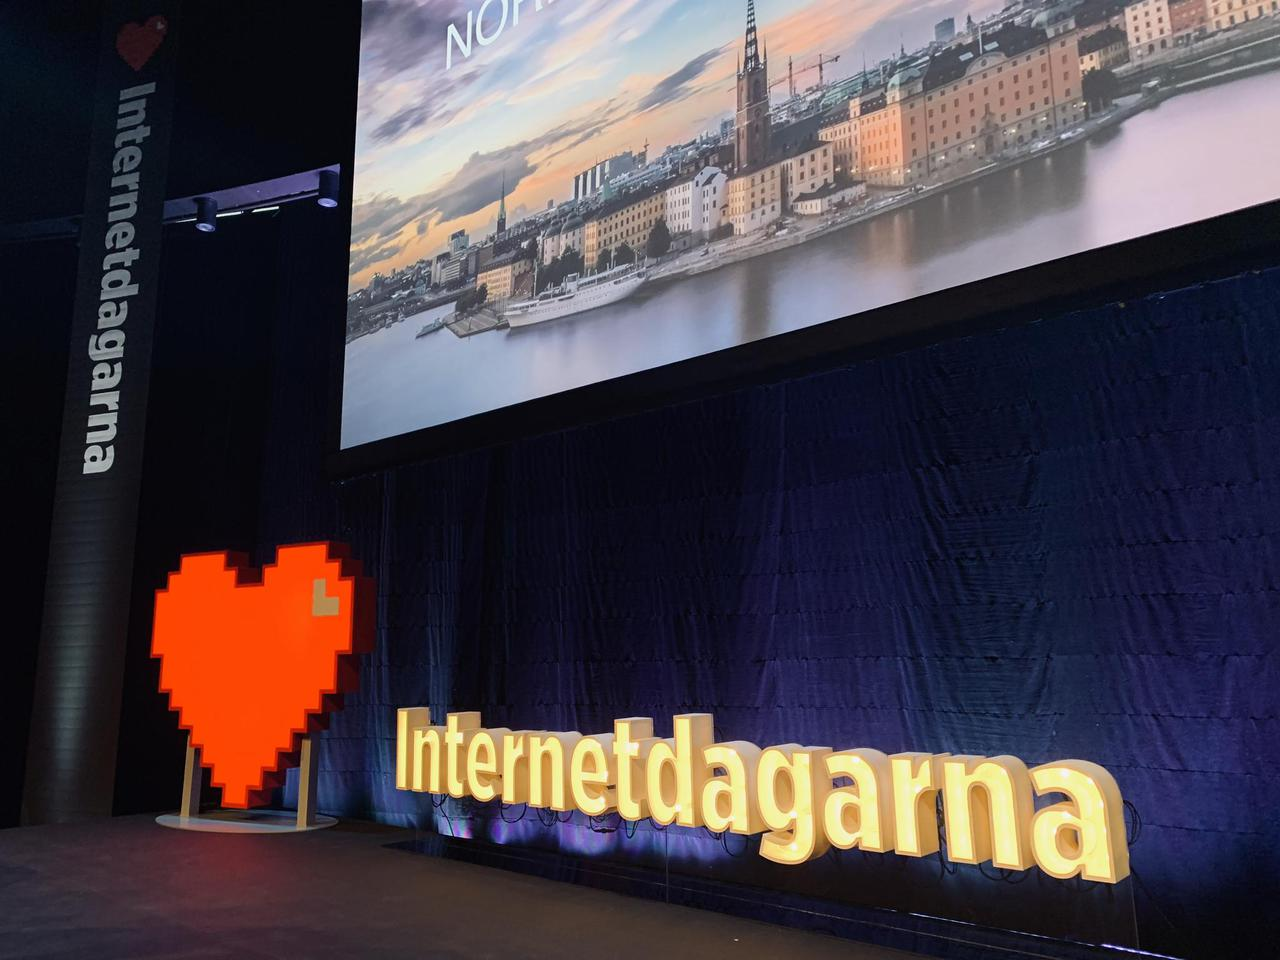 Nordic Domain Days 2018 @ Rootsi Internetdagarna